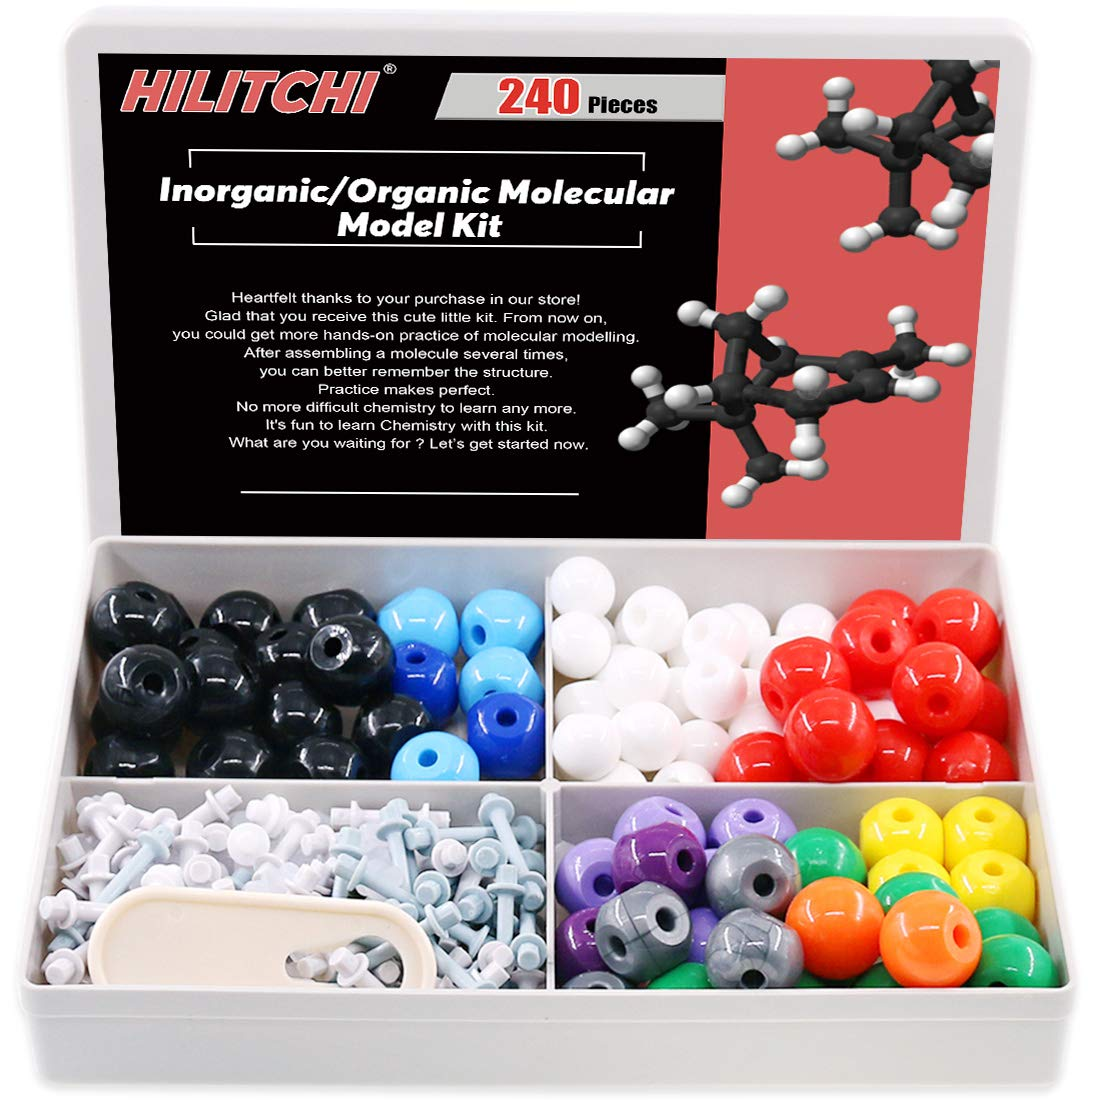 Hilitchi 240Pcs Organic Chemistry Molecular Model Kit with Remover Tool for Organic and Inorganic Chemistry Teaching Tool Set 86 Atoms and 153 Bonds